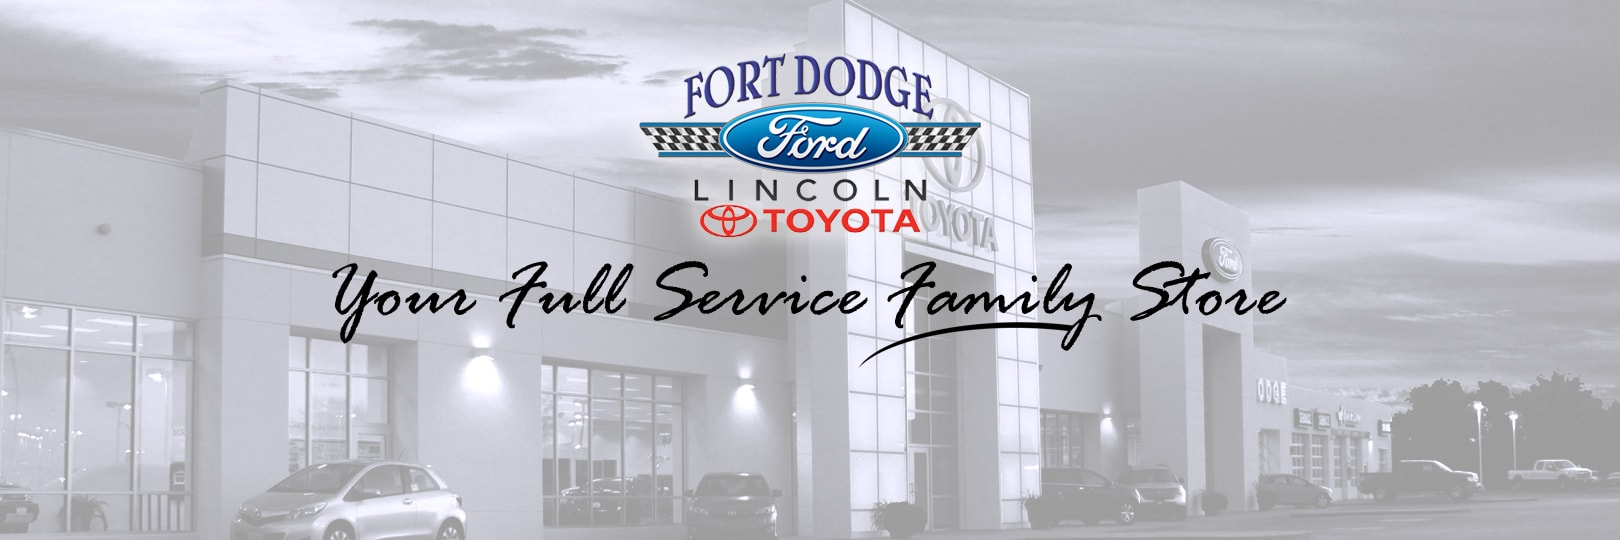 Fort Dodge Ford >> Fort Dodge Ford Lincoln Toyota Toyota Ford Lincoln Dealership In